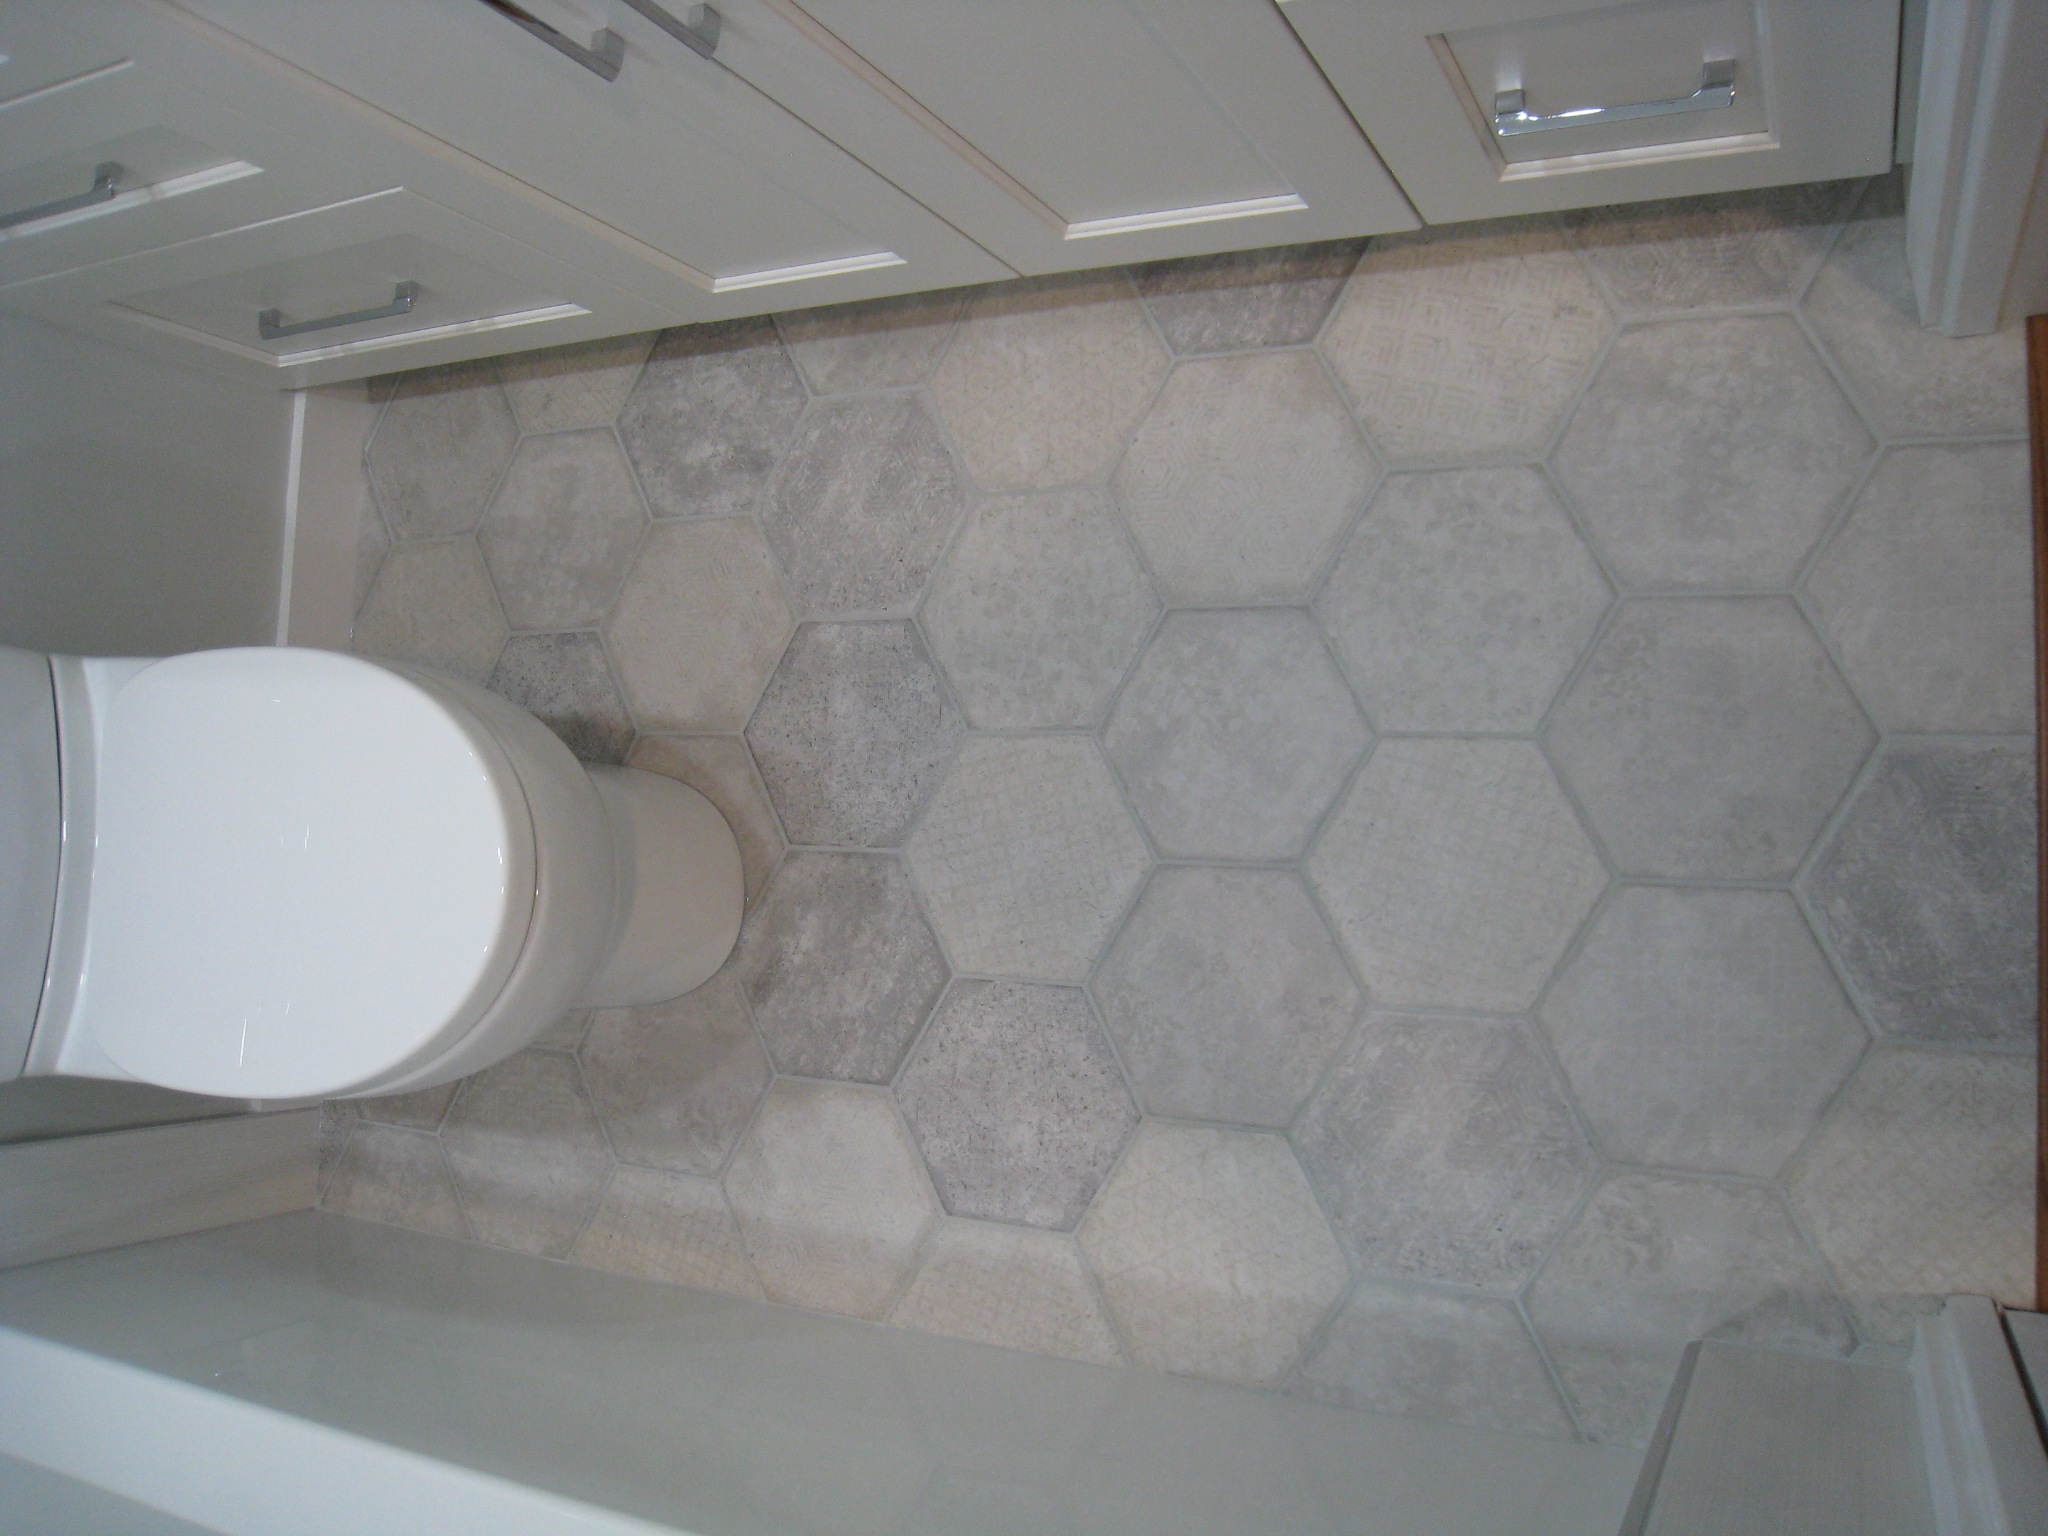 Hexagon floor tiles in Bathroom